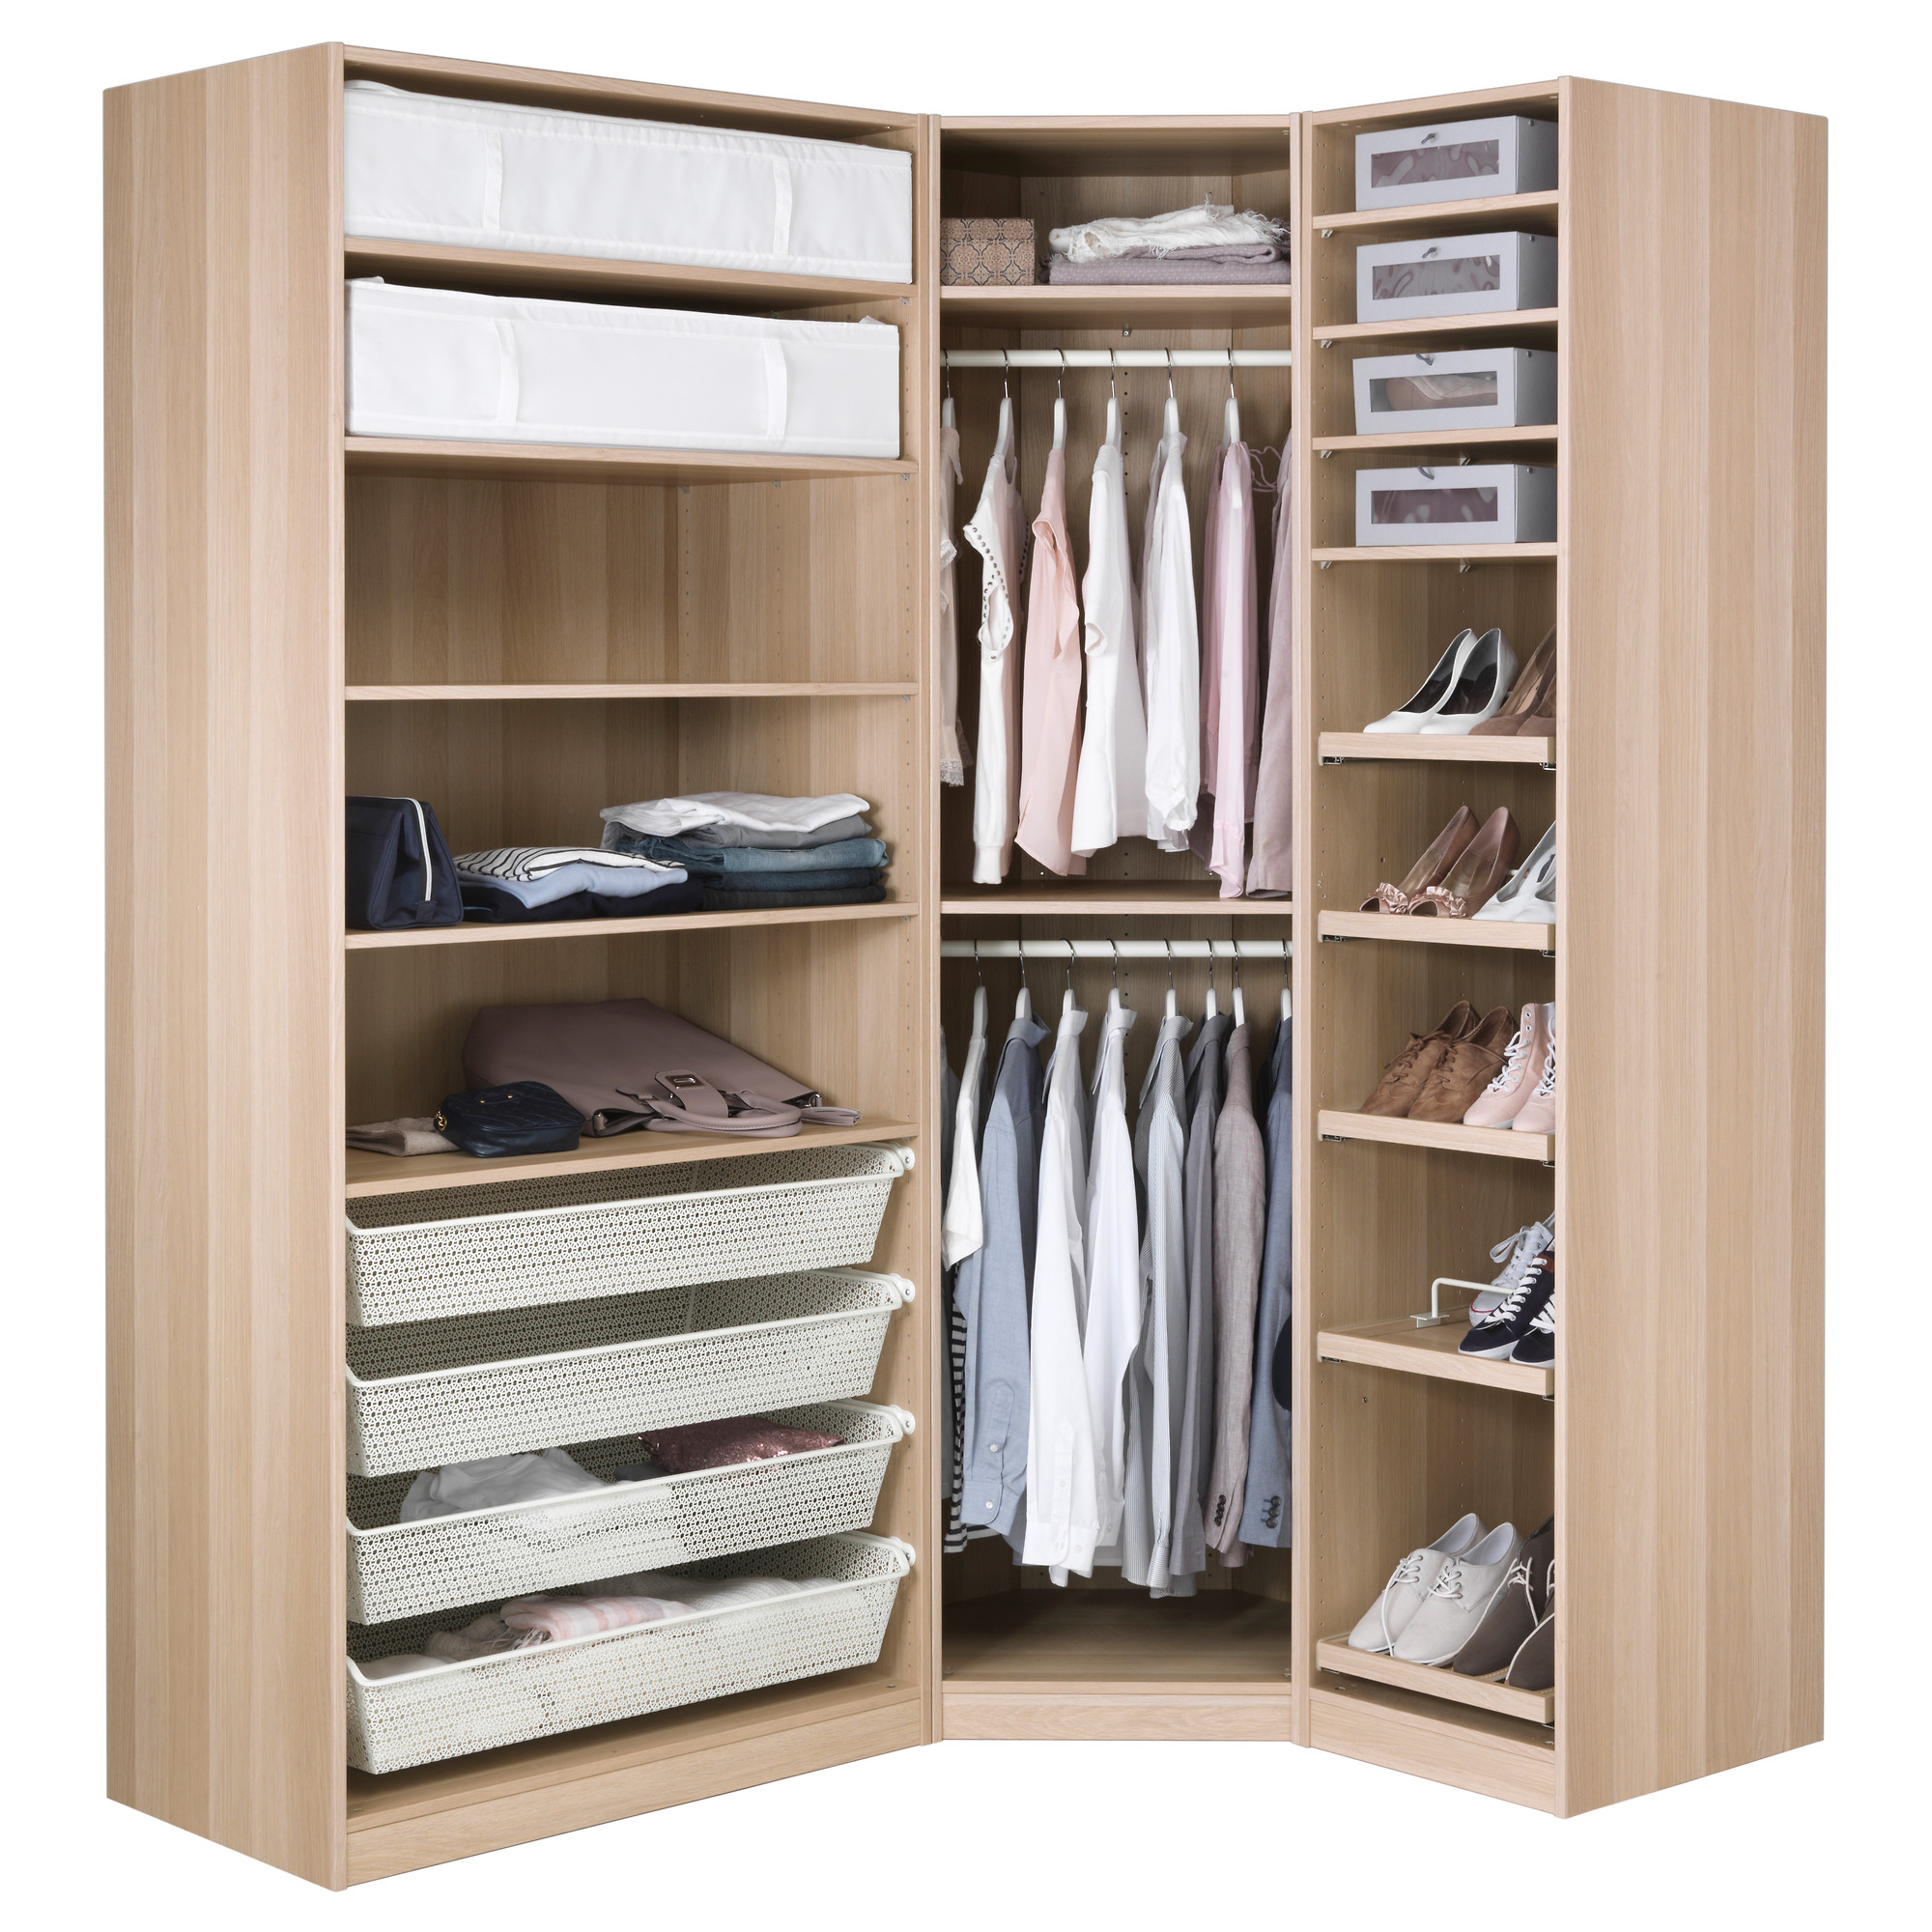 Armoire D Angle Dressing wardrobe pax (35 photos): reviews, ikea corner planner in